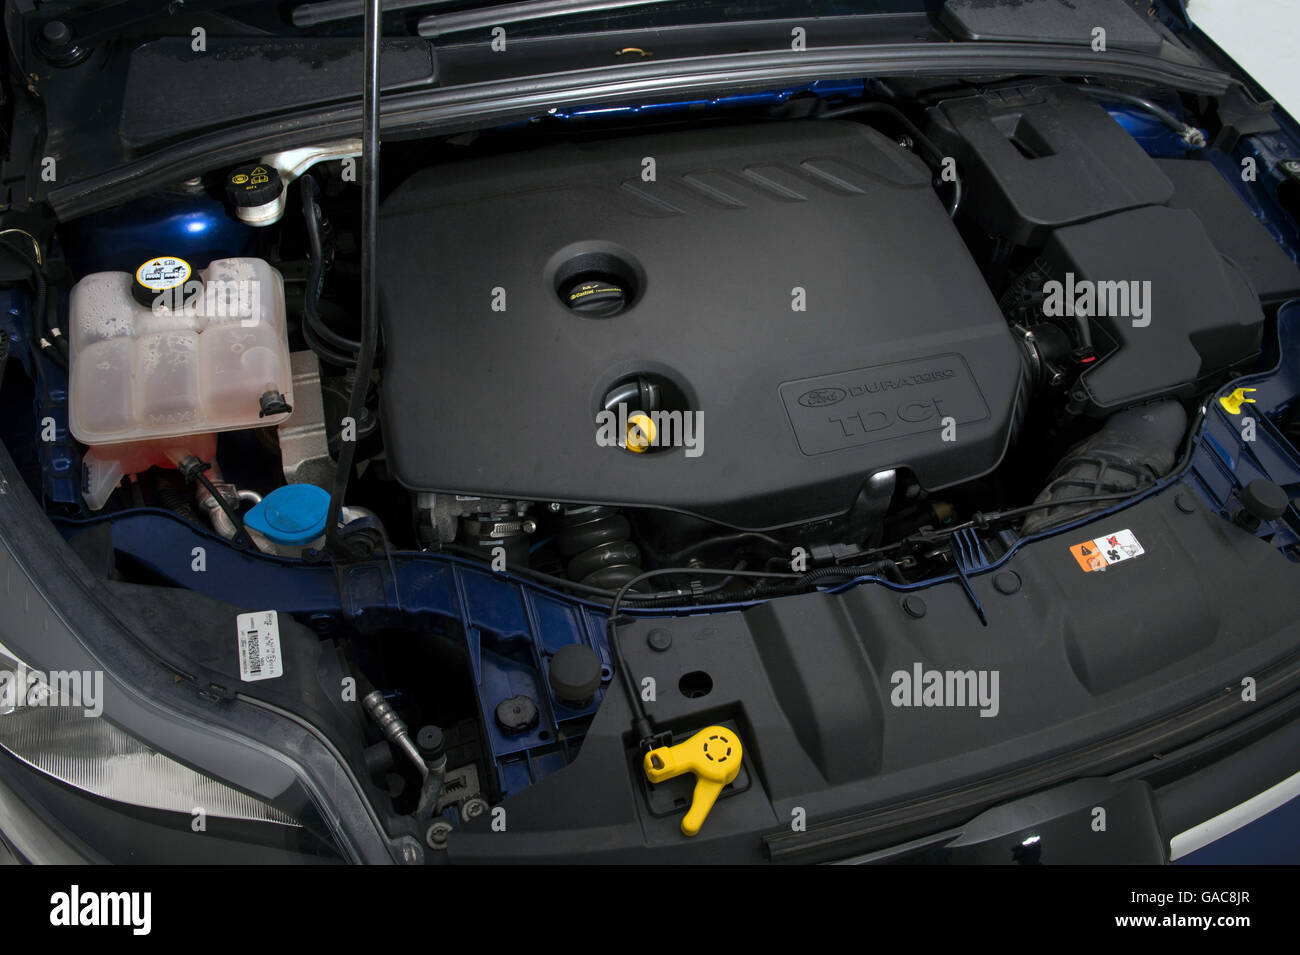 2014 Ford Focus Photo Stock